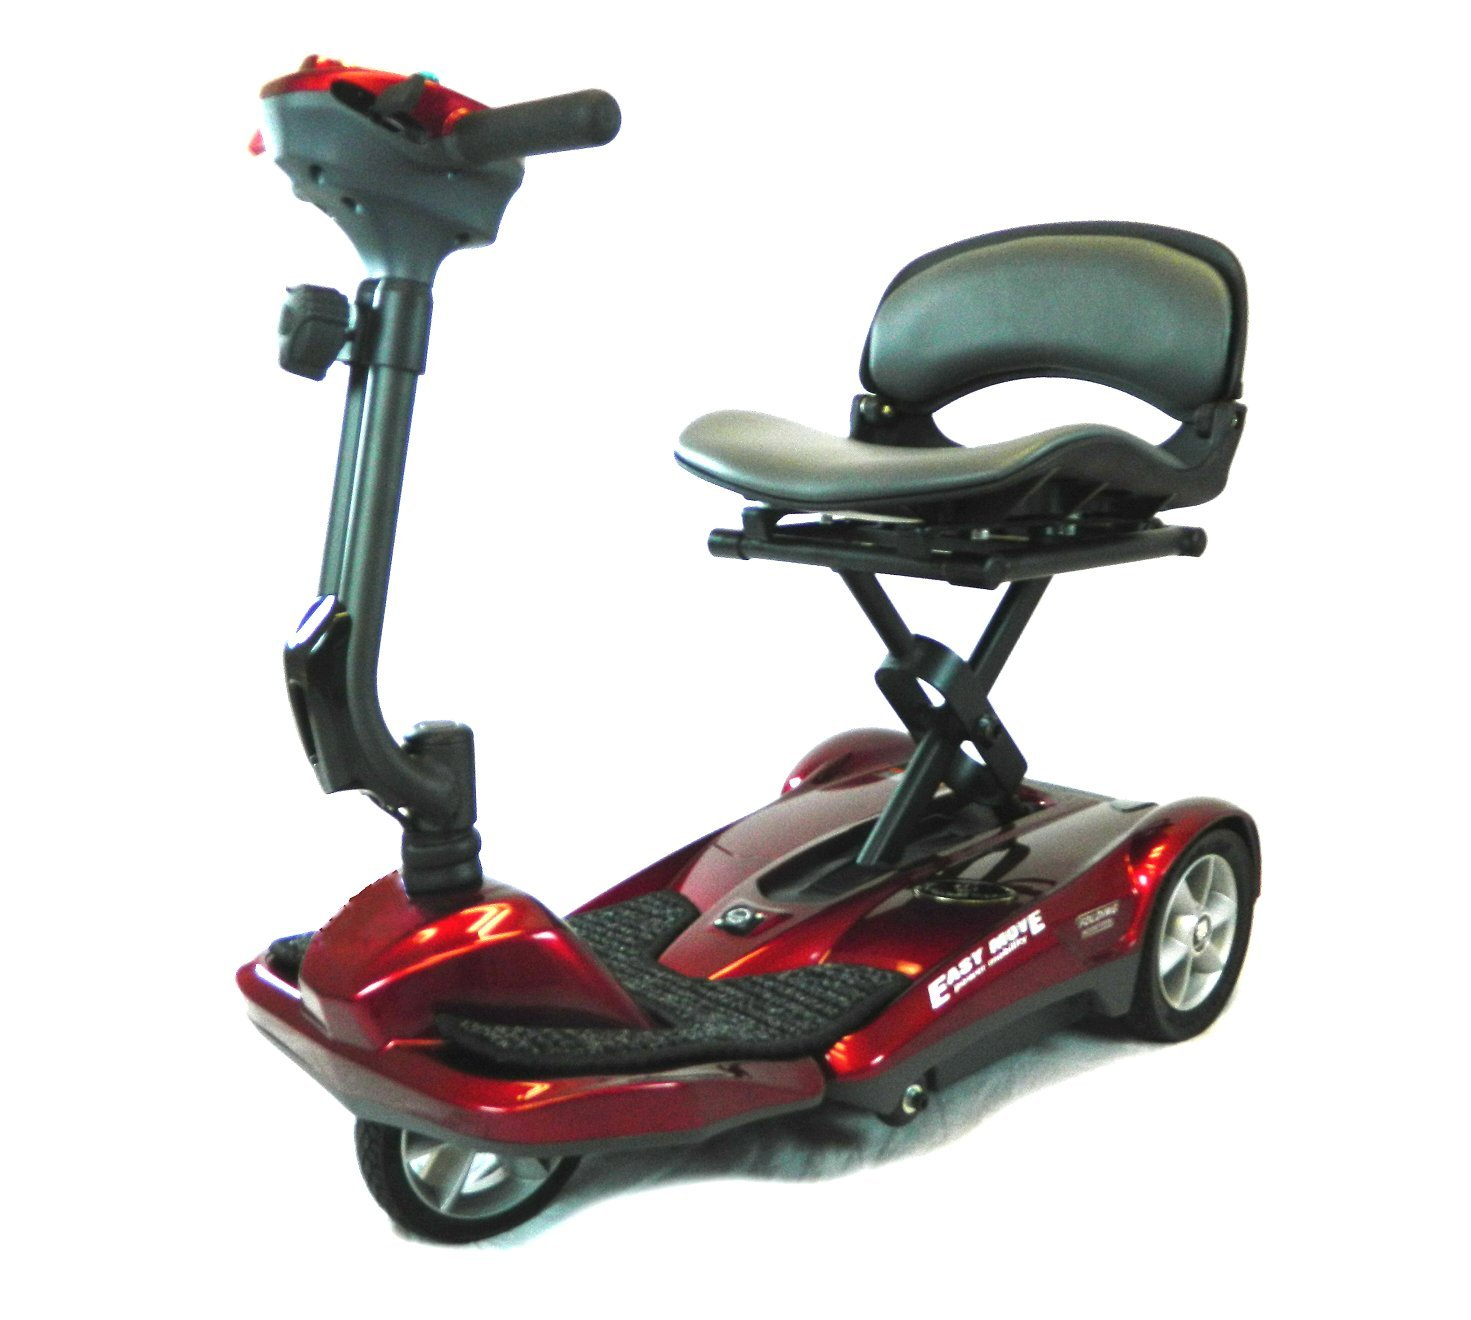 Heartway Passport Easy Move Mobility Scooter Remote Automatic Folding, Burgundy